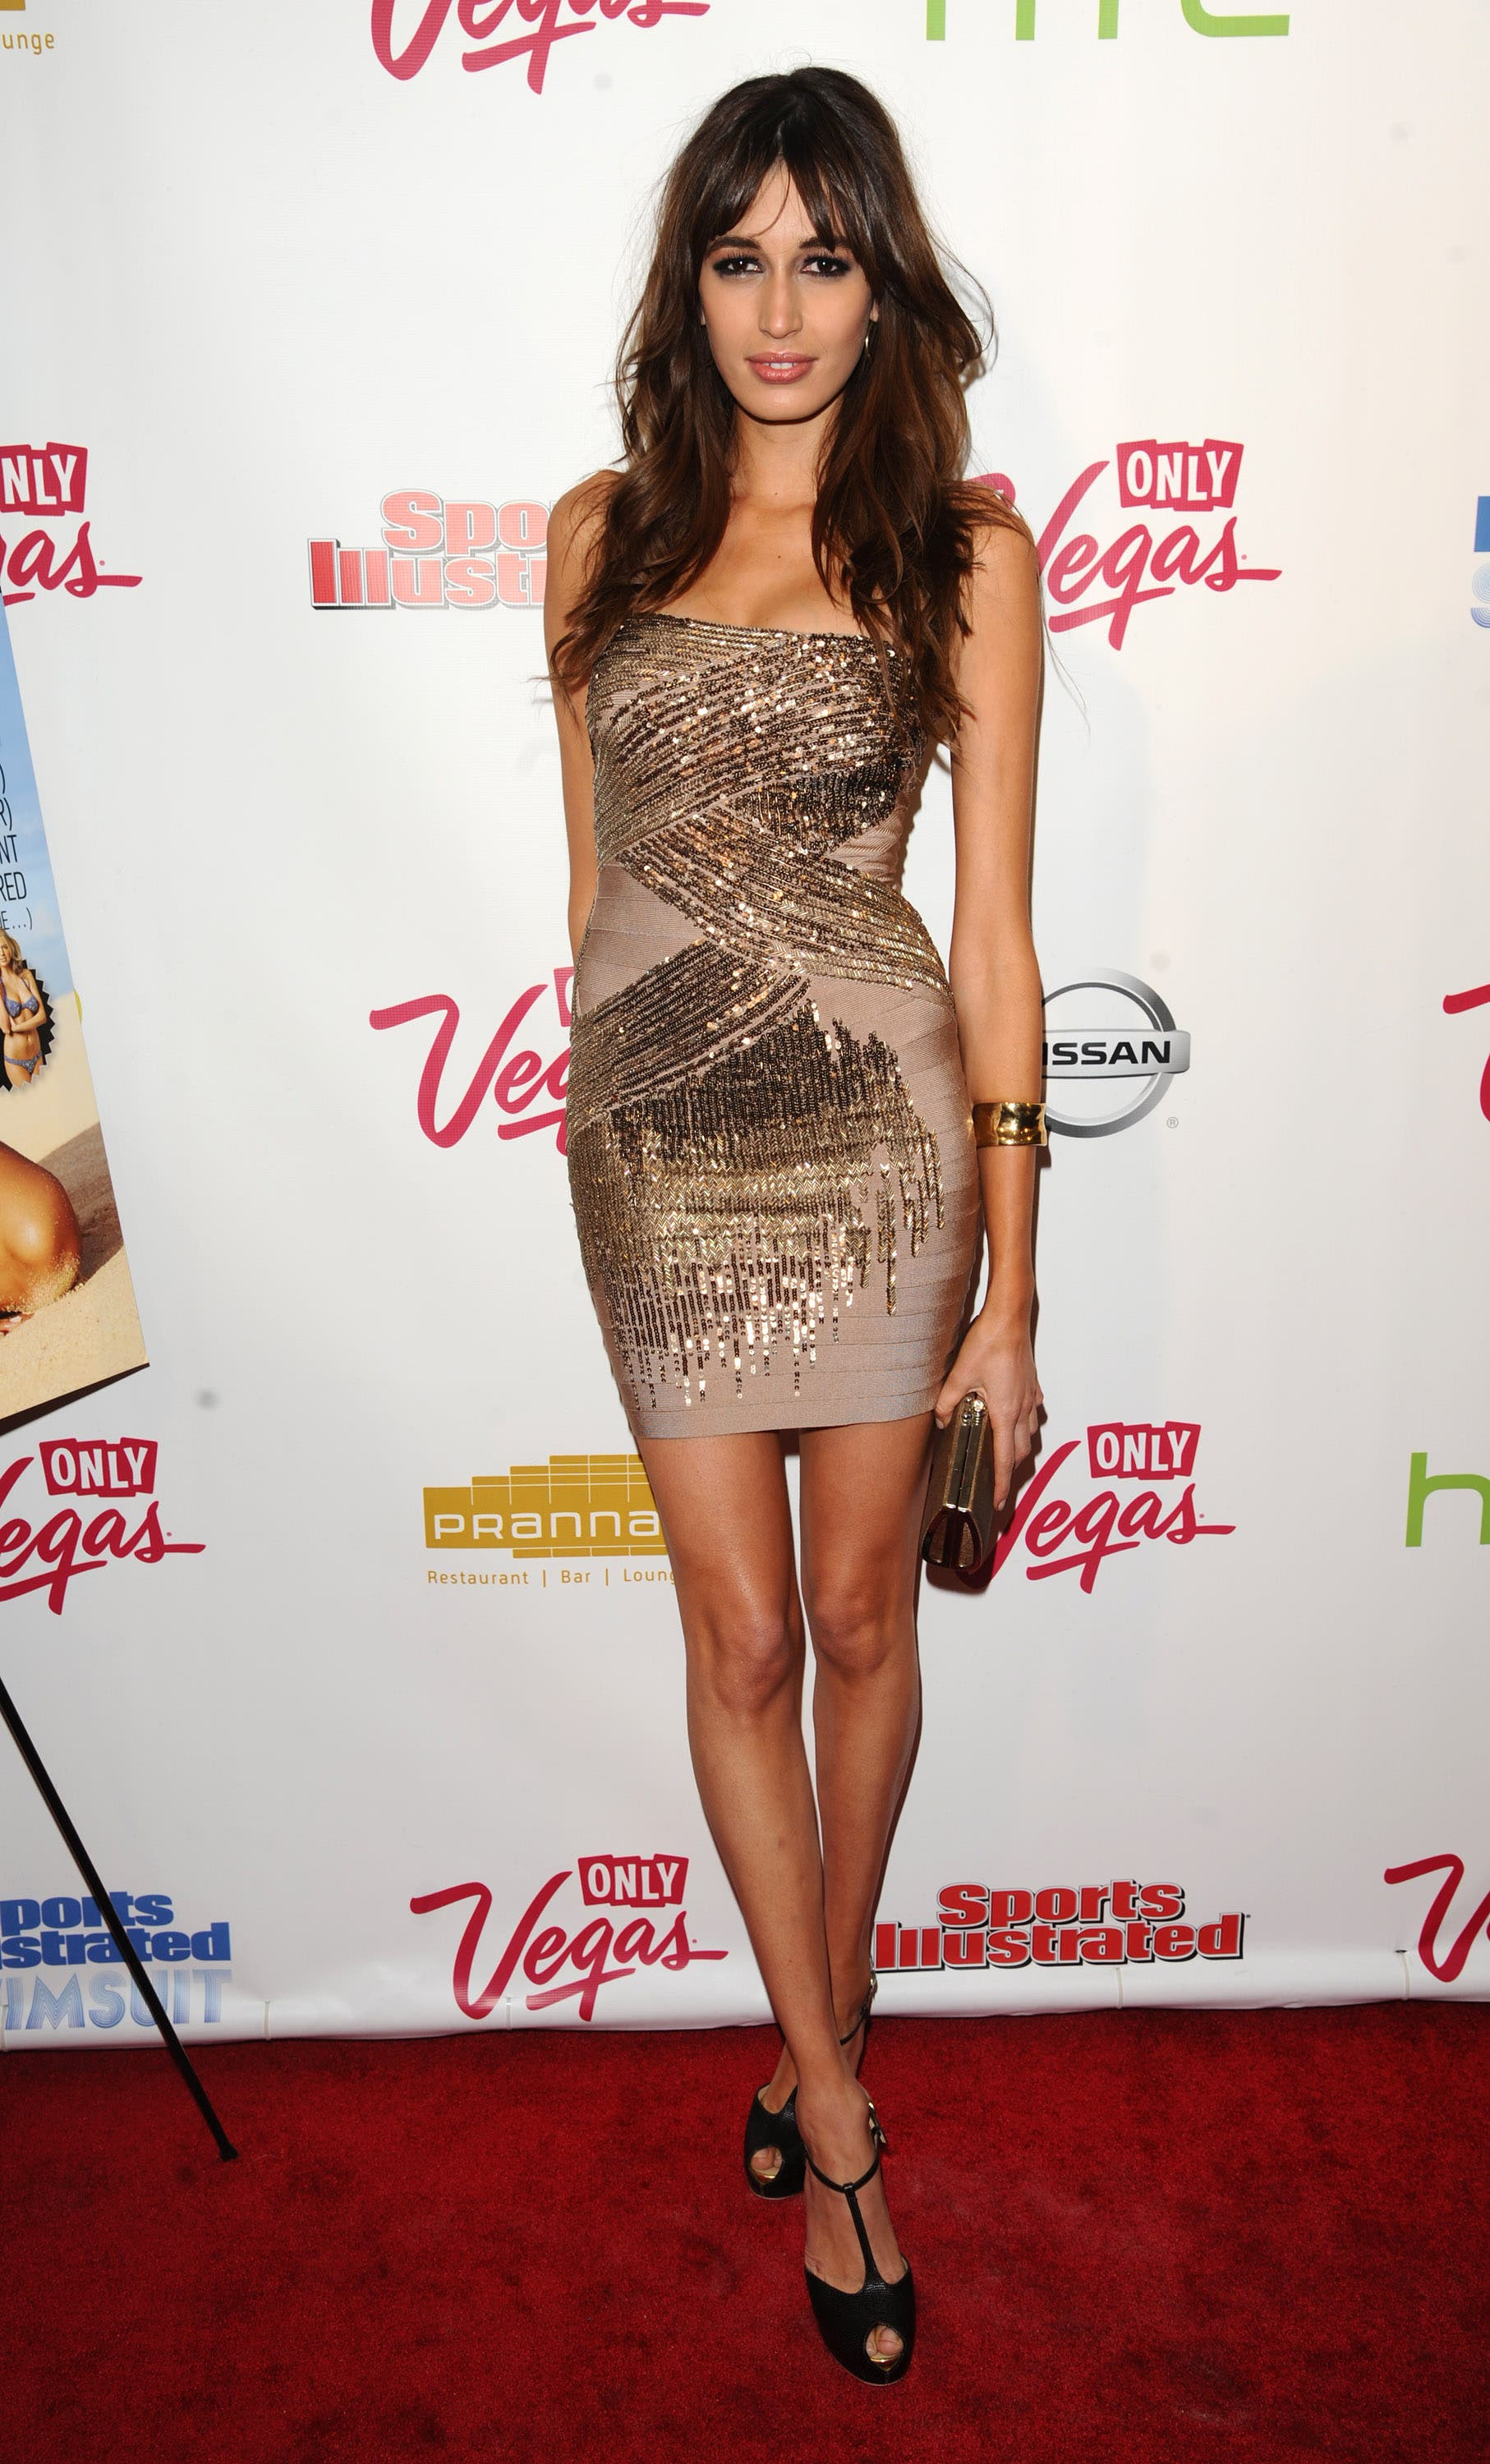 Kenza Fourati attends the 2011 Sports Illustrated swimsuit issue unveiling party, in New York on Tuesday, Feb. 15, 2011. (AP